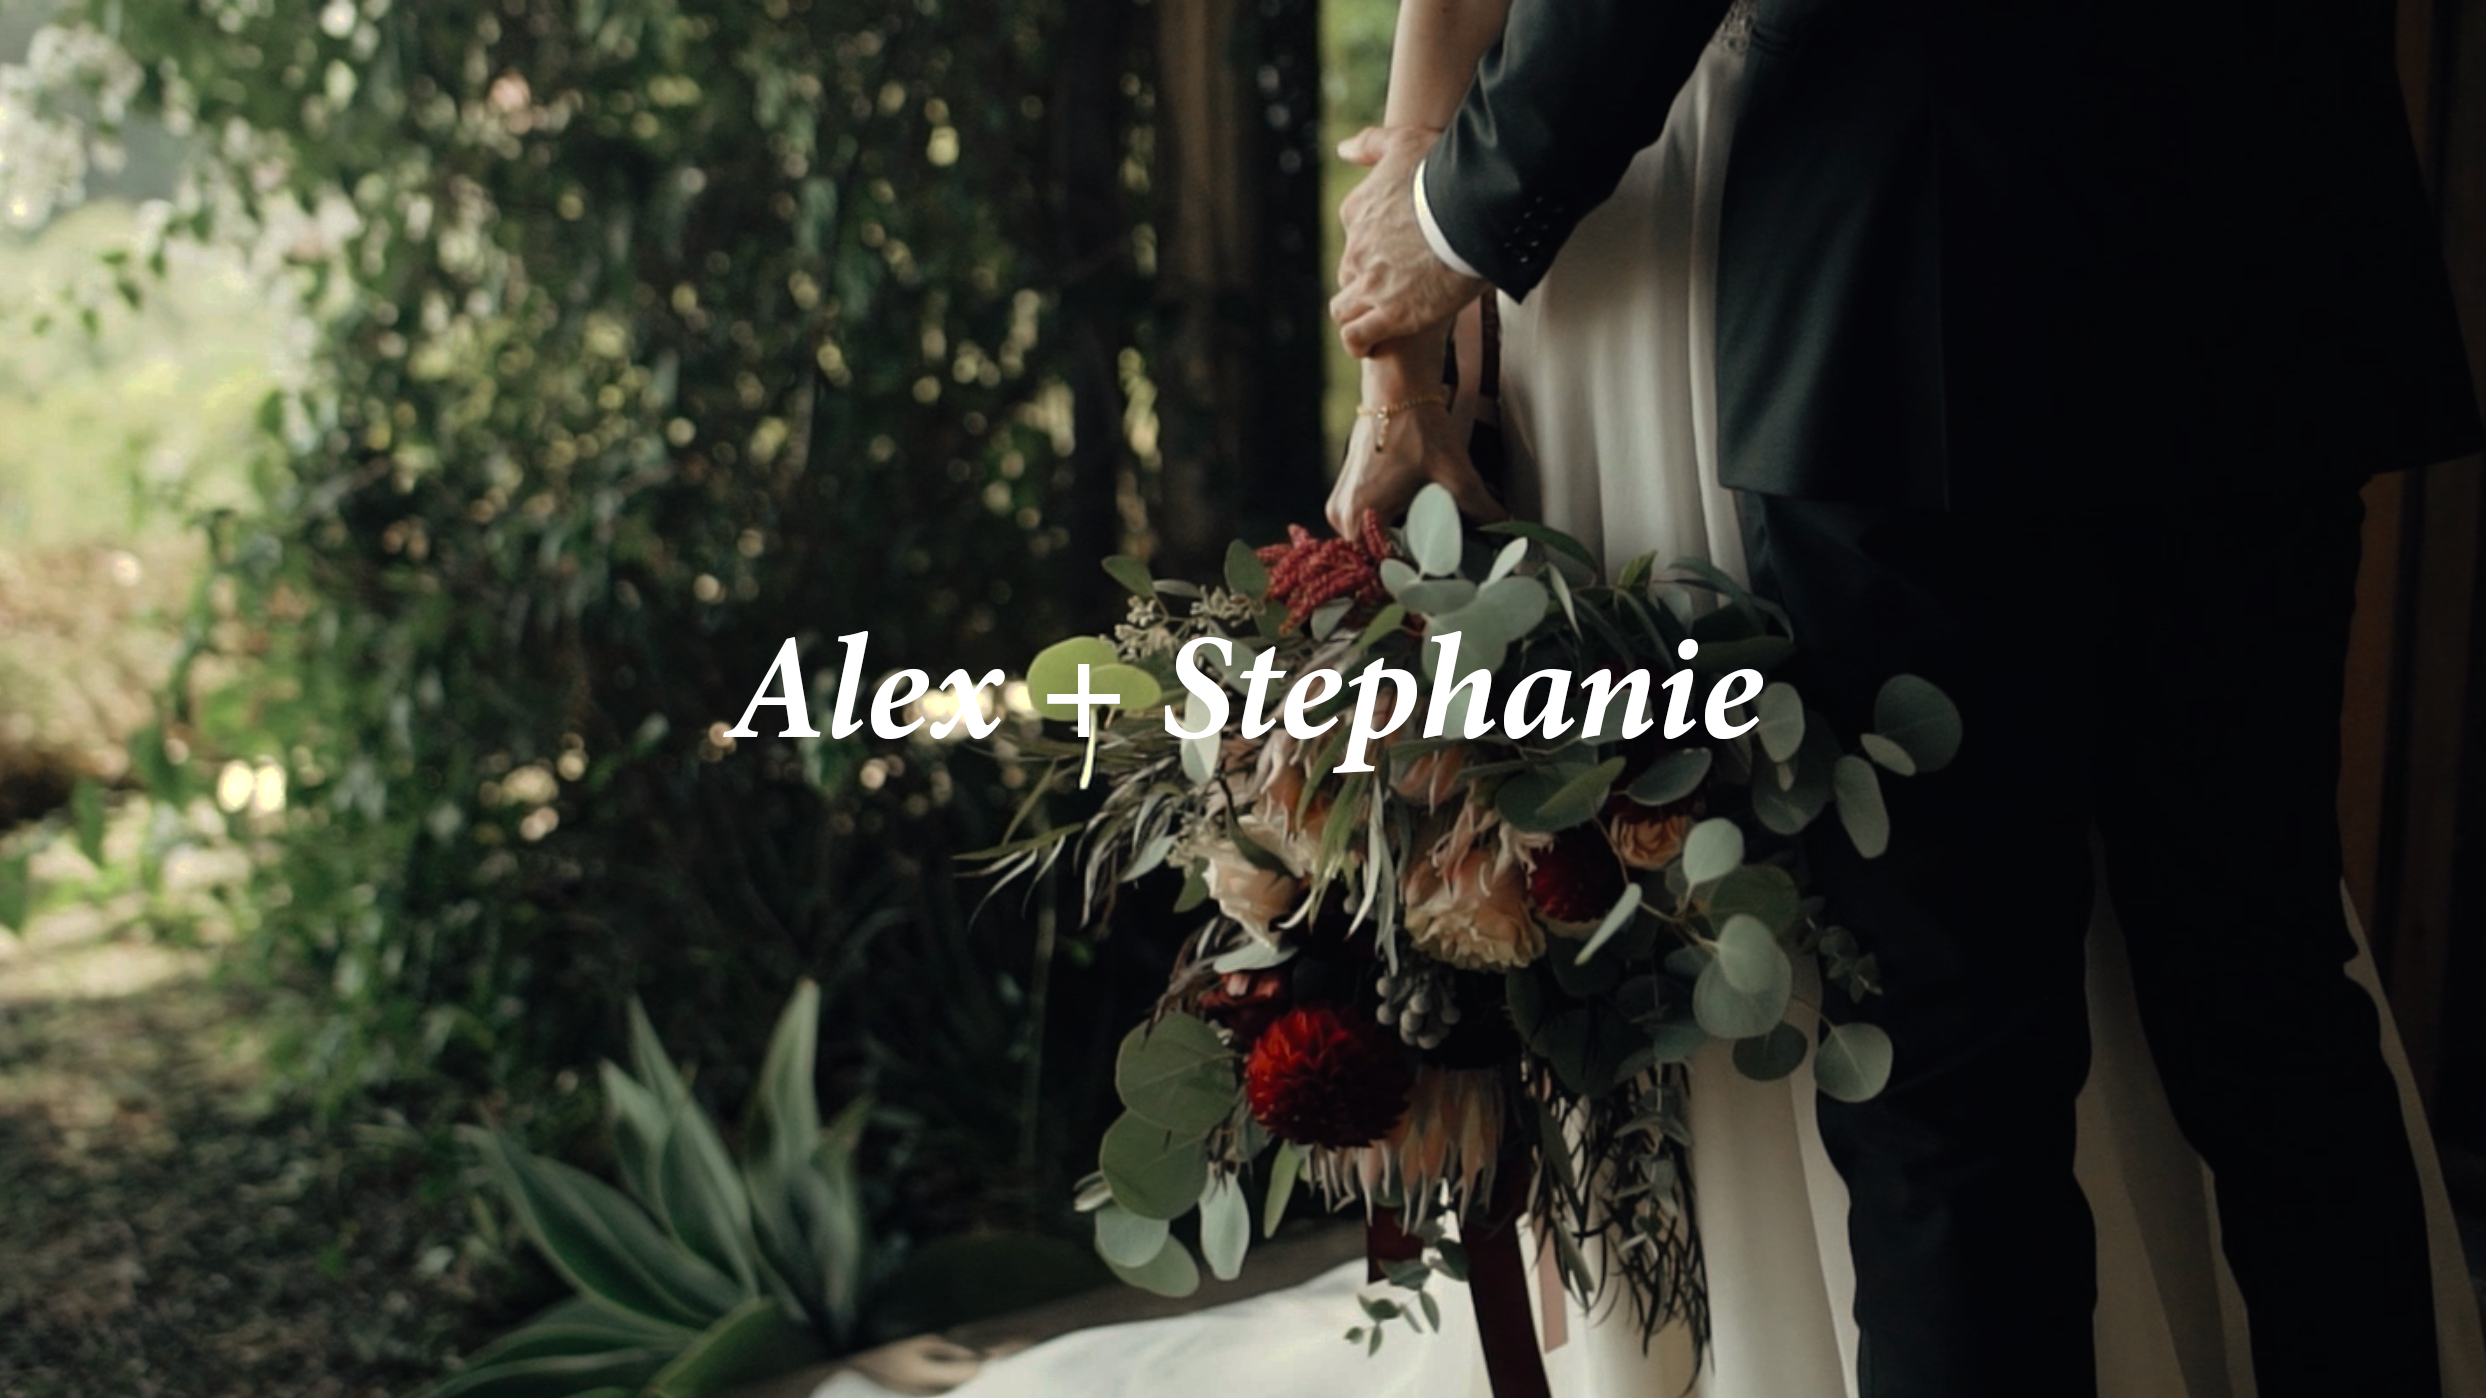 Alex + Stephanie Thumbnail.jpg